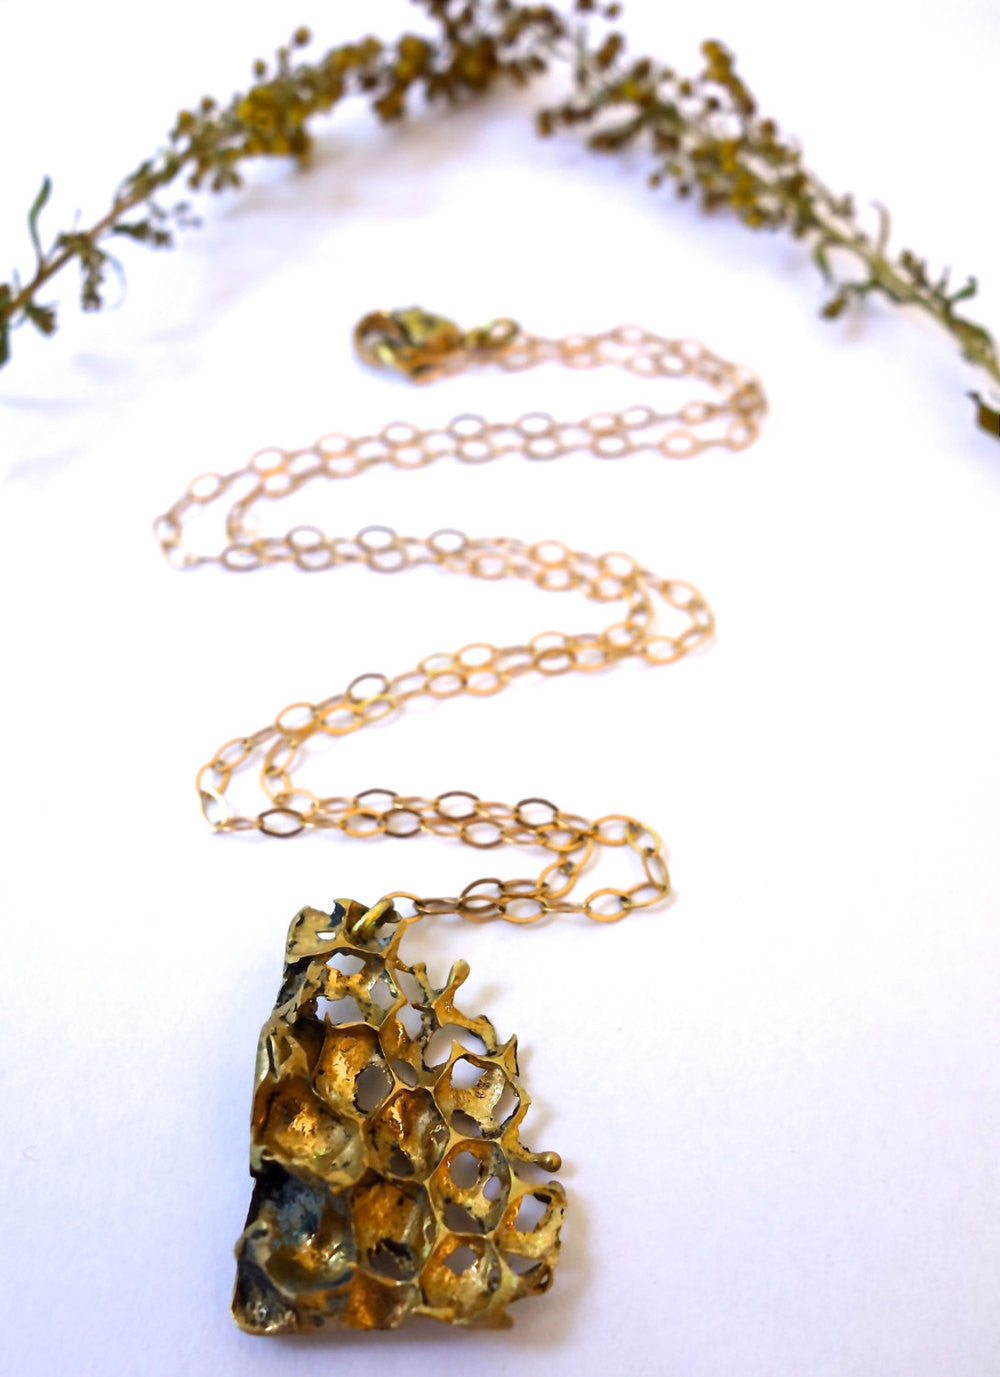 Gold Honeycomb Necklace - Real Honeycomb